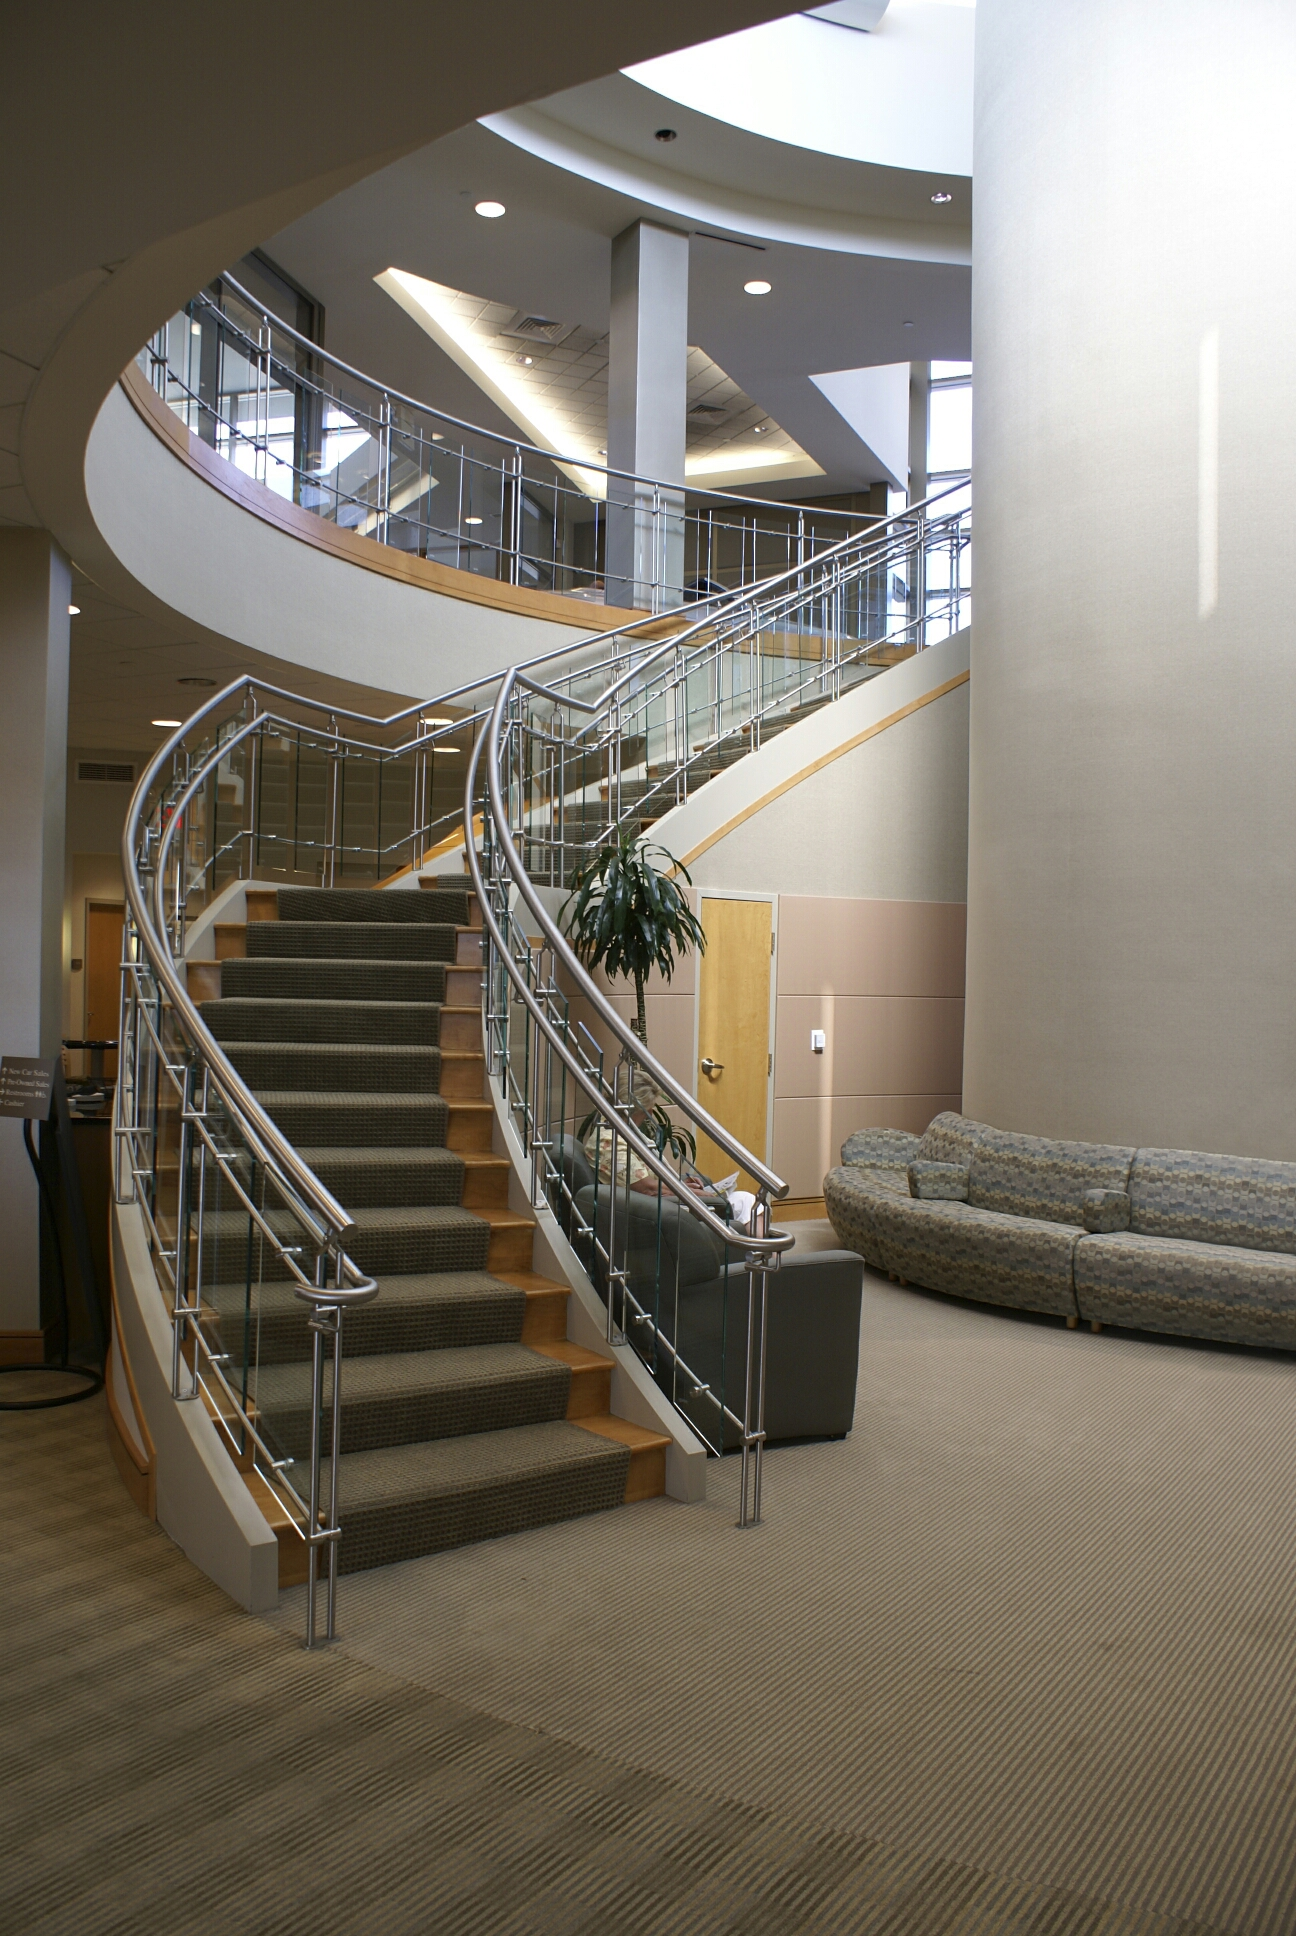 Staircase architecture artistic stairs for Architecture spiral staircase